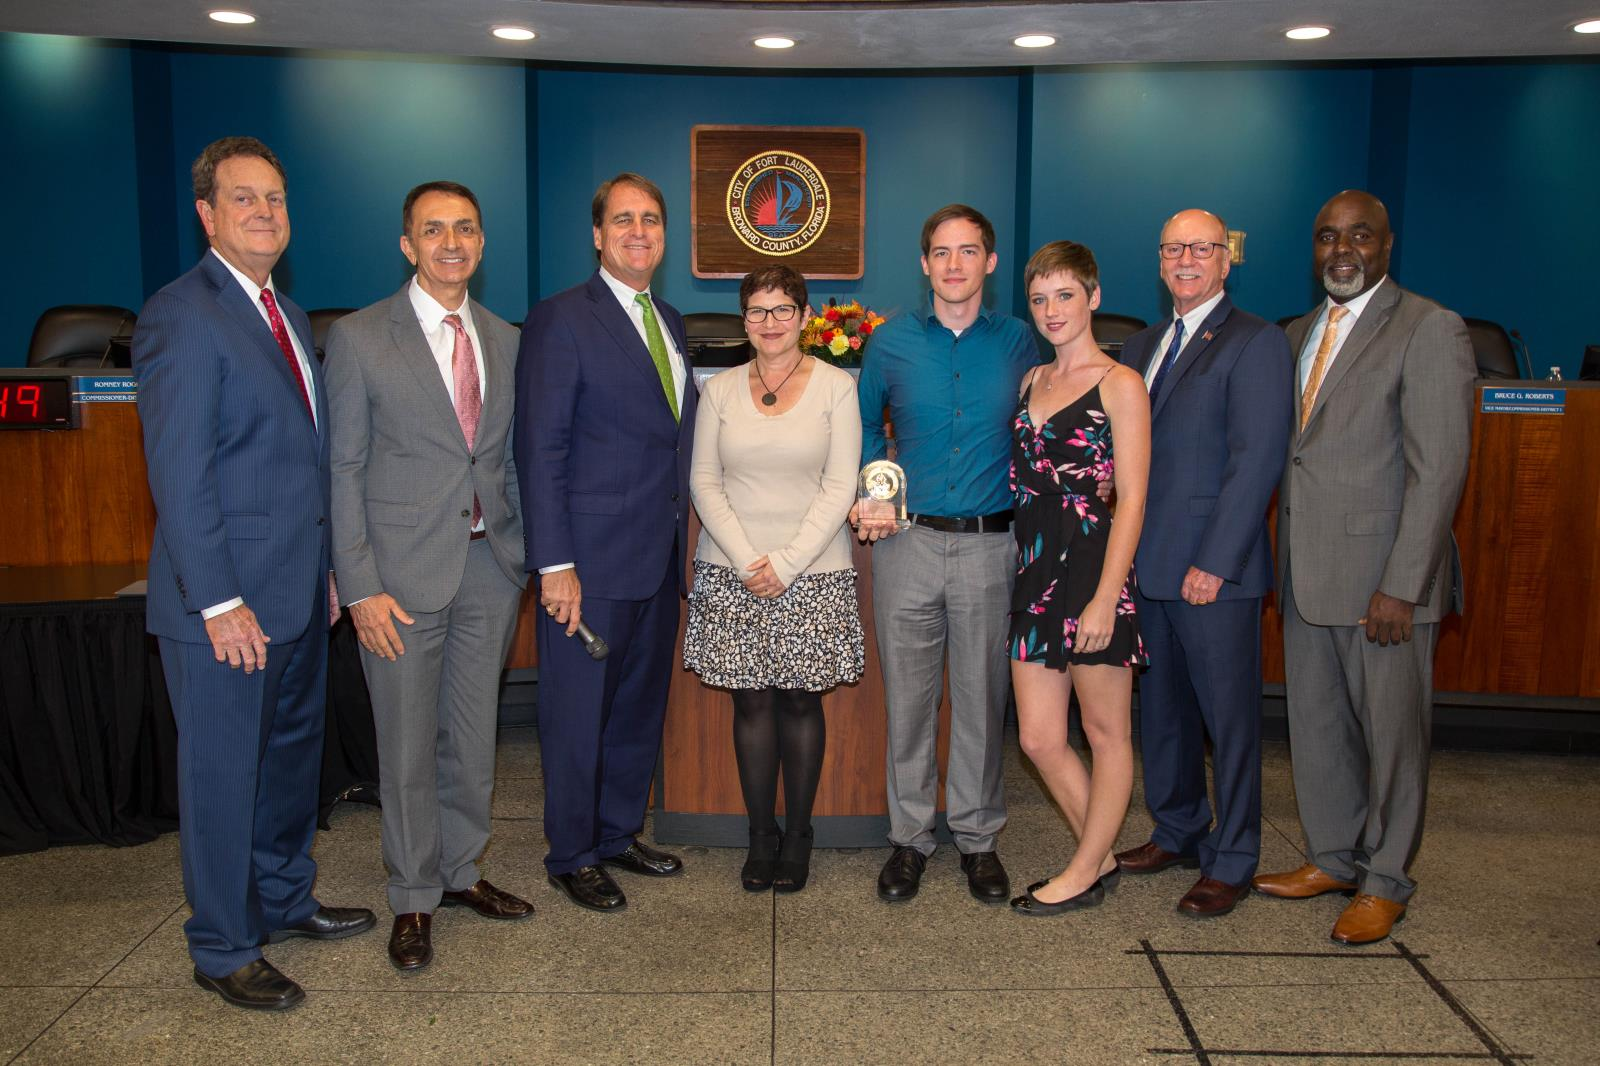 Fort Lauderdale City Commission with family of Exemplary Former City Employee Gene Dempsey